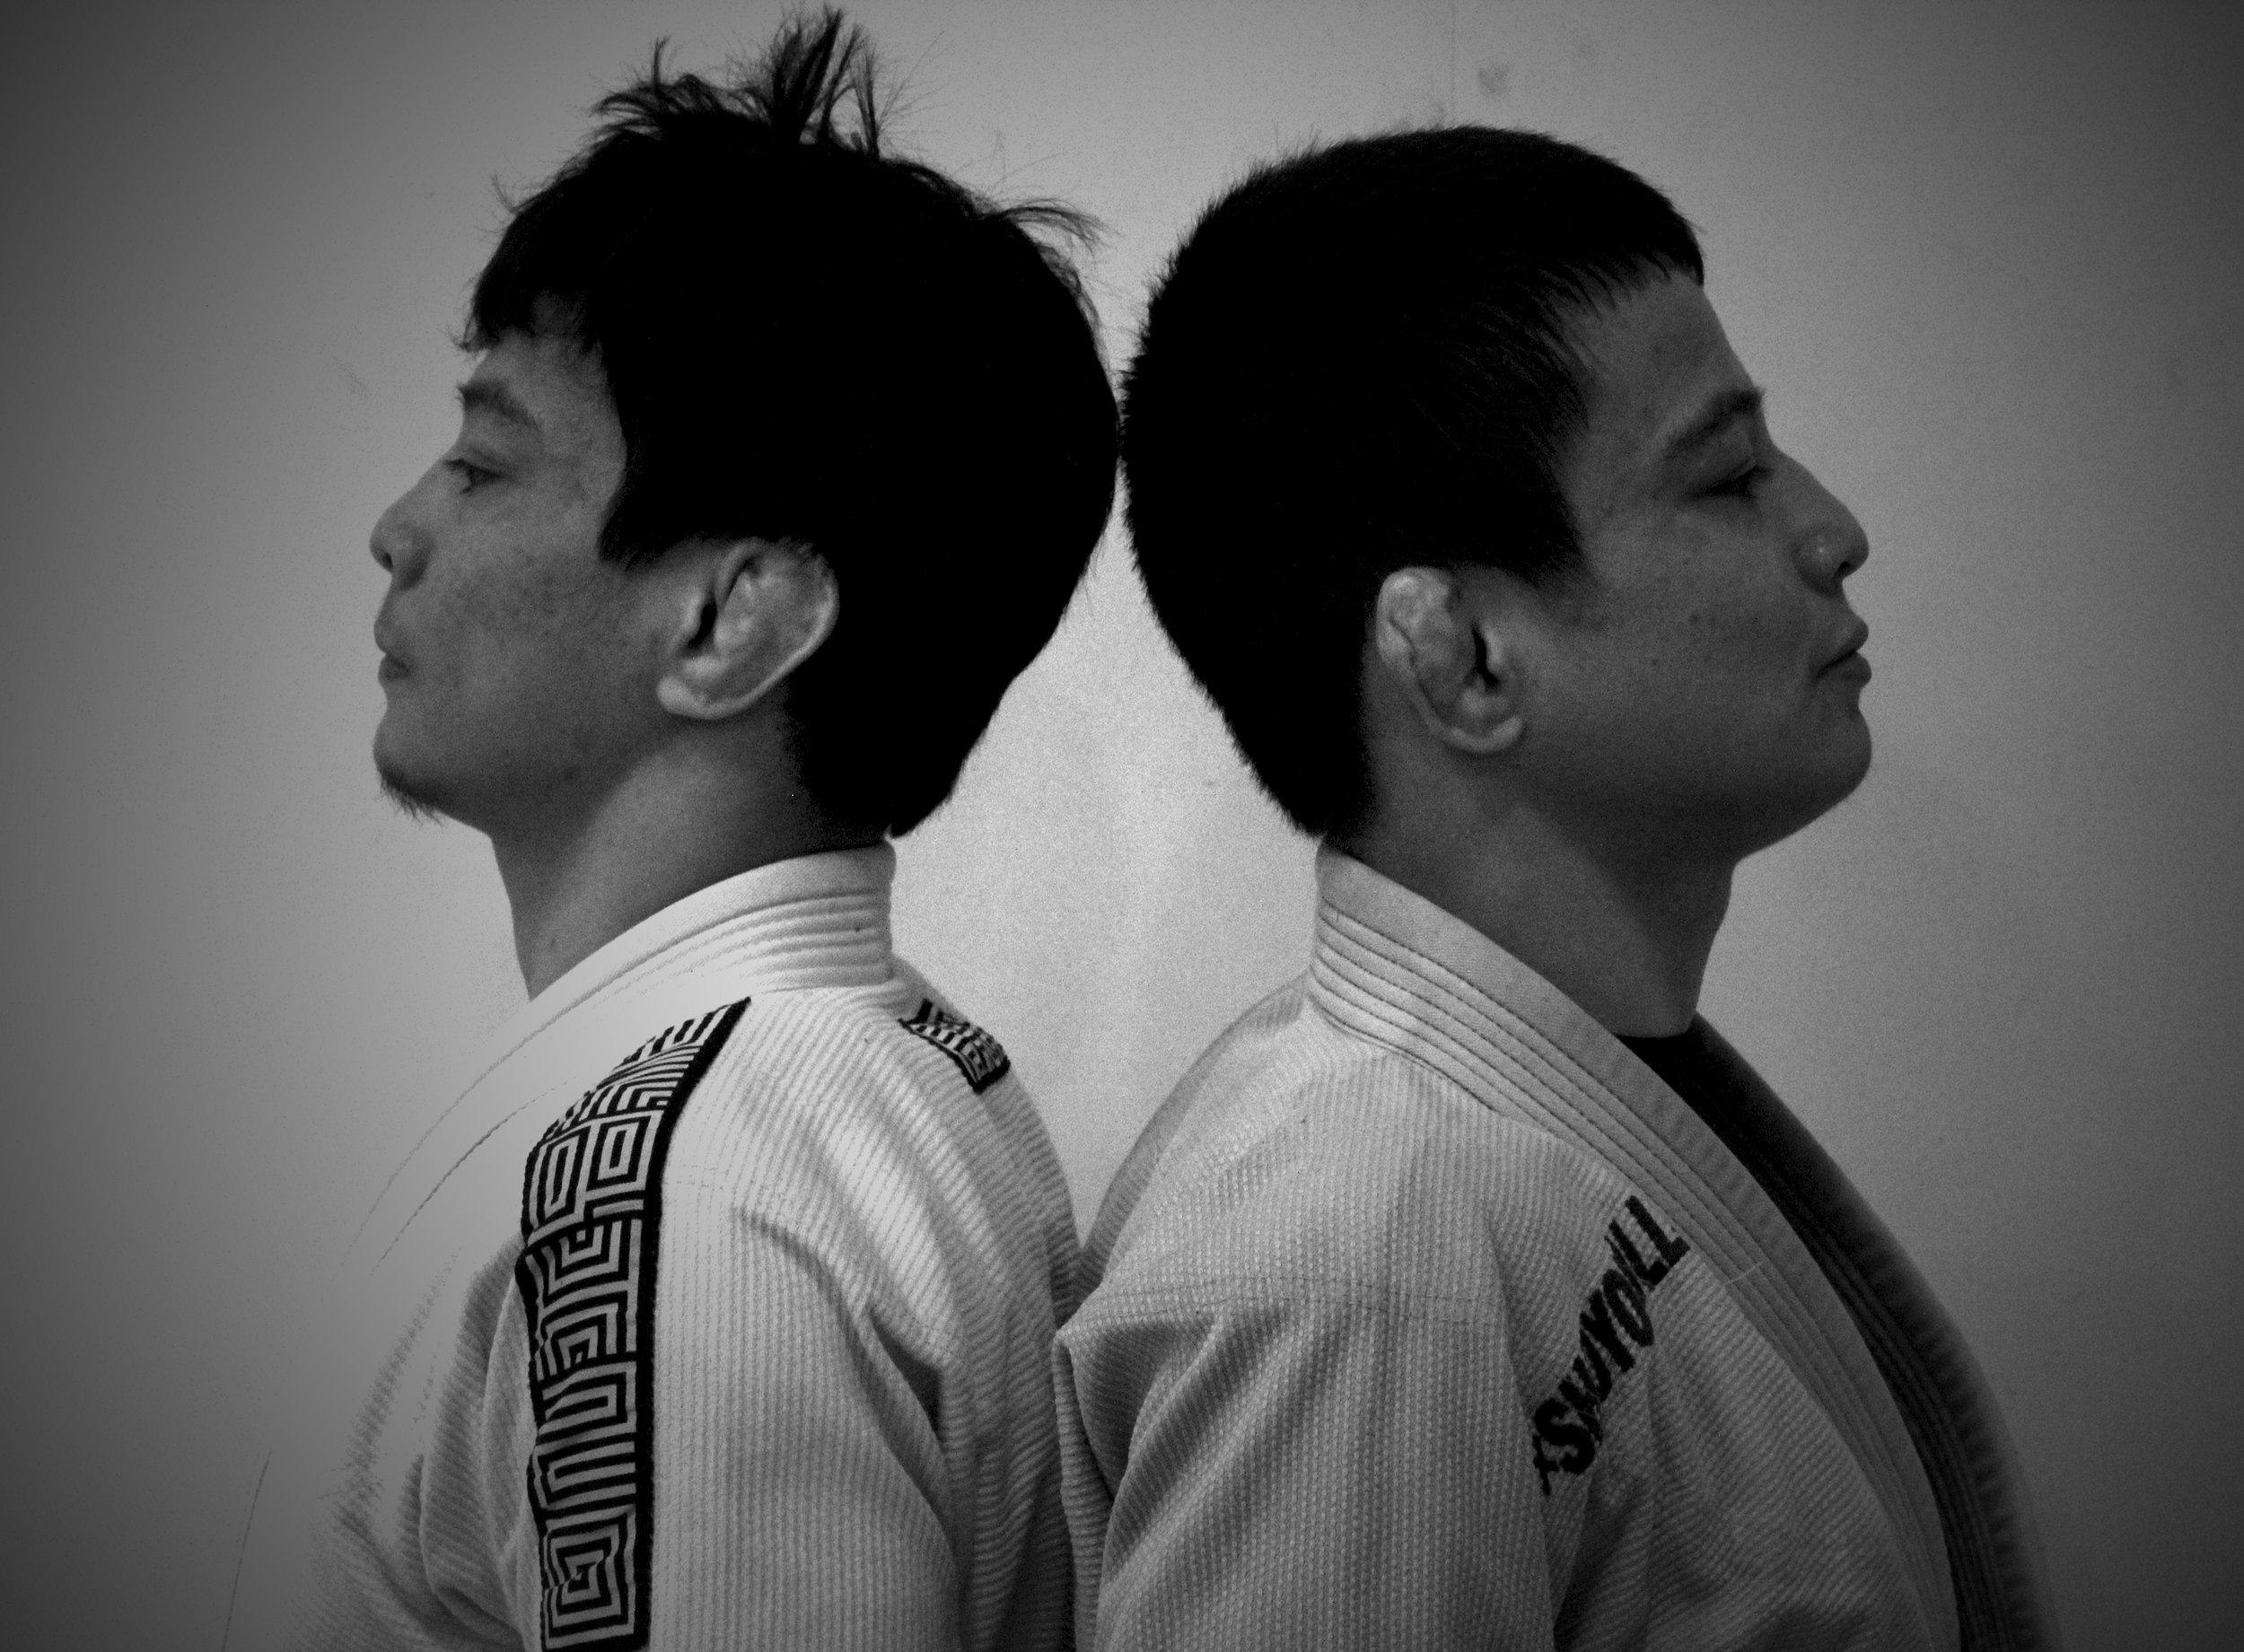 Paulo and Joao Miyao